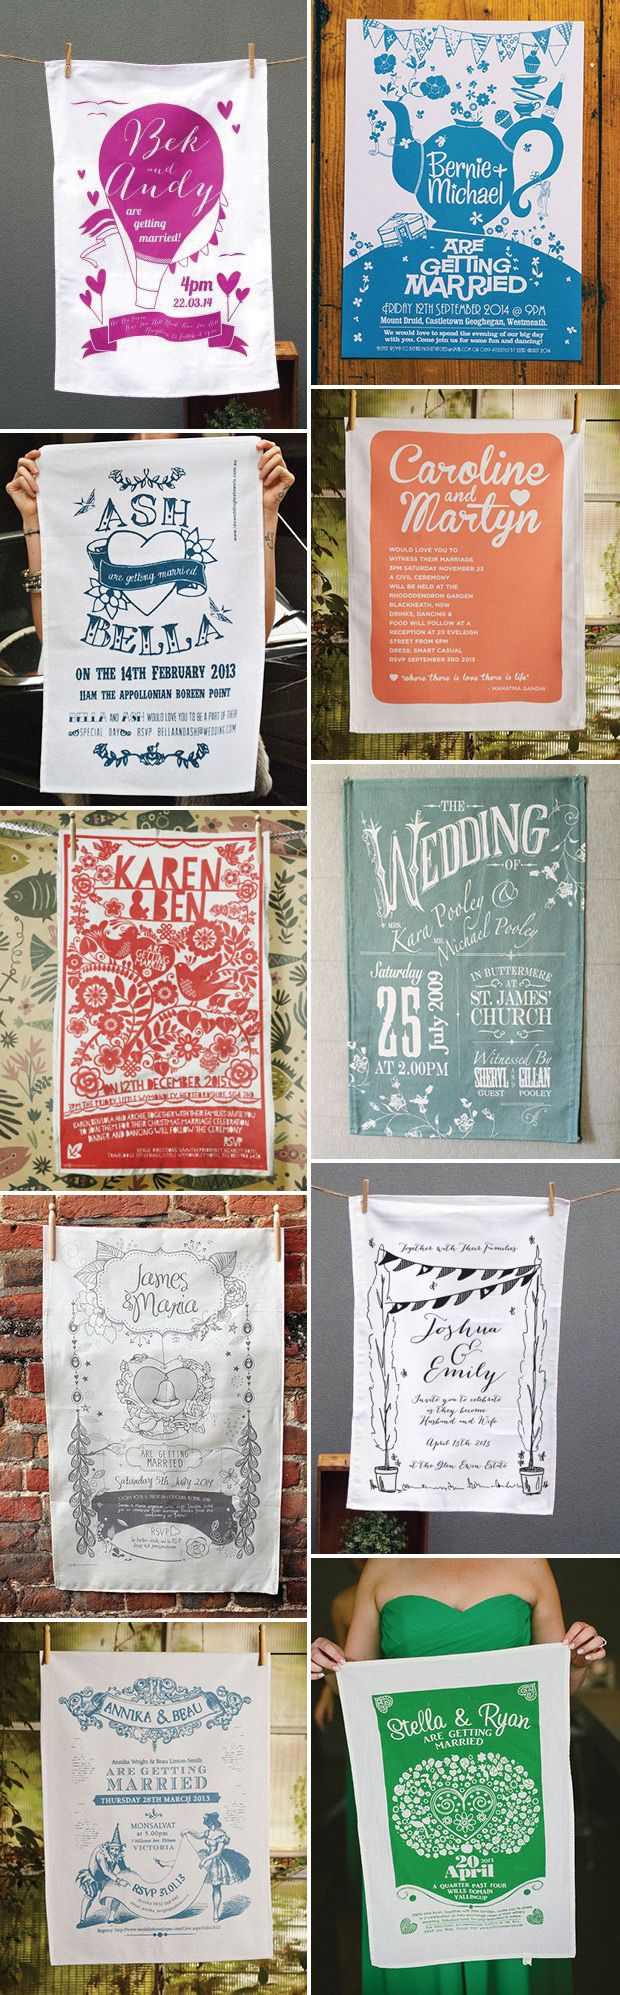 A Unique Wedding Invitation Idea | Wedding Tea Towels | www.onefabday.com